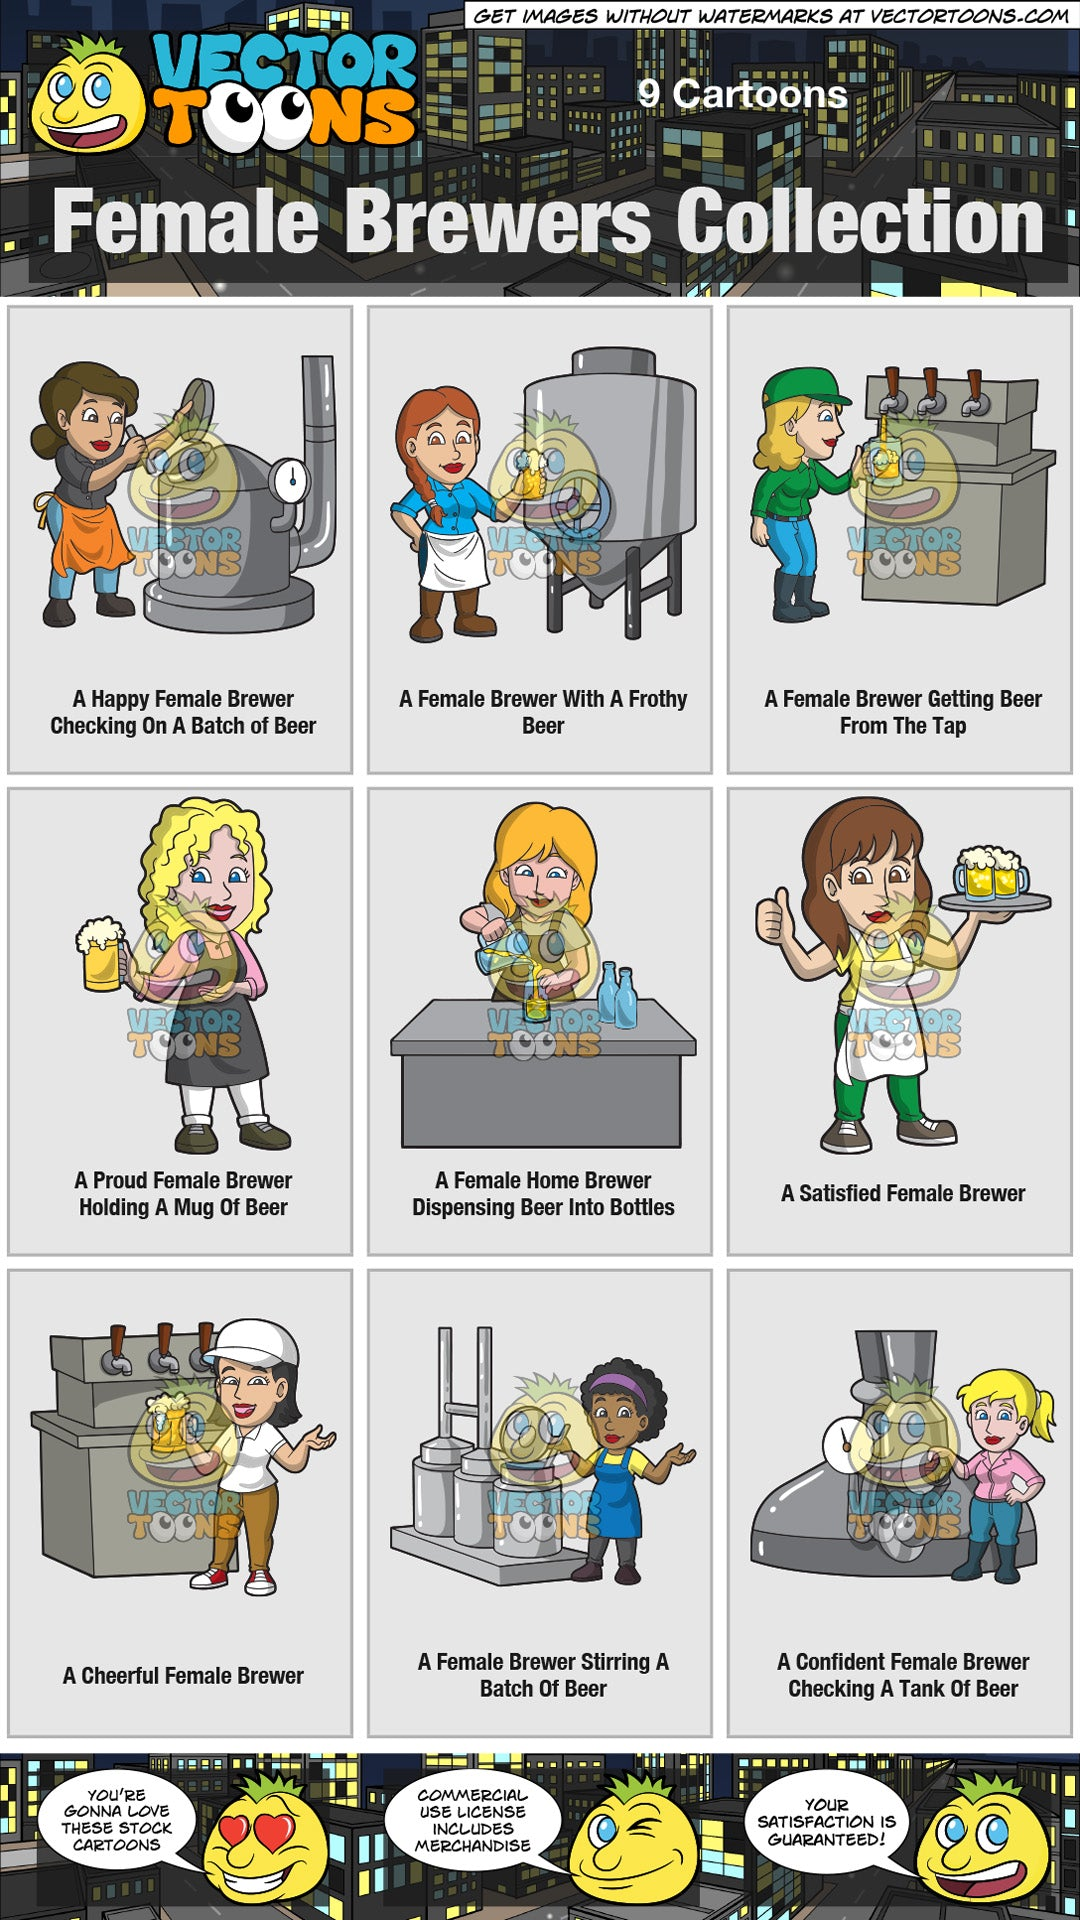 Female Brewers Collection